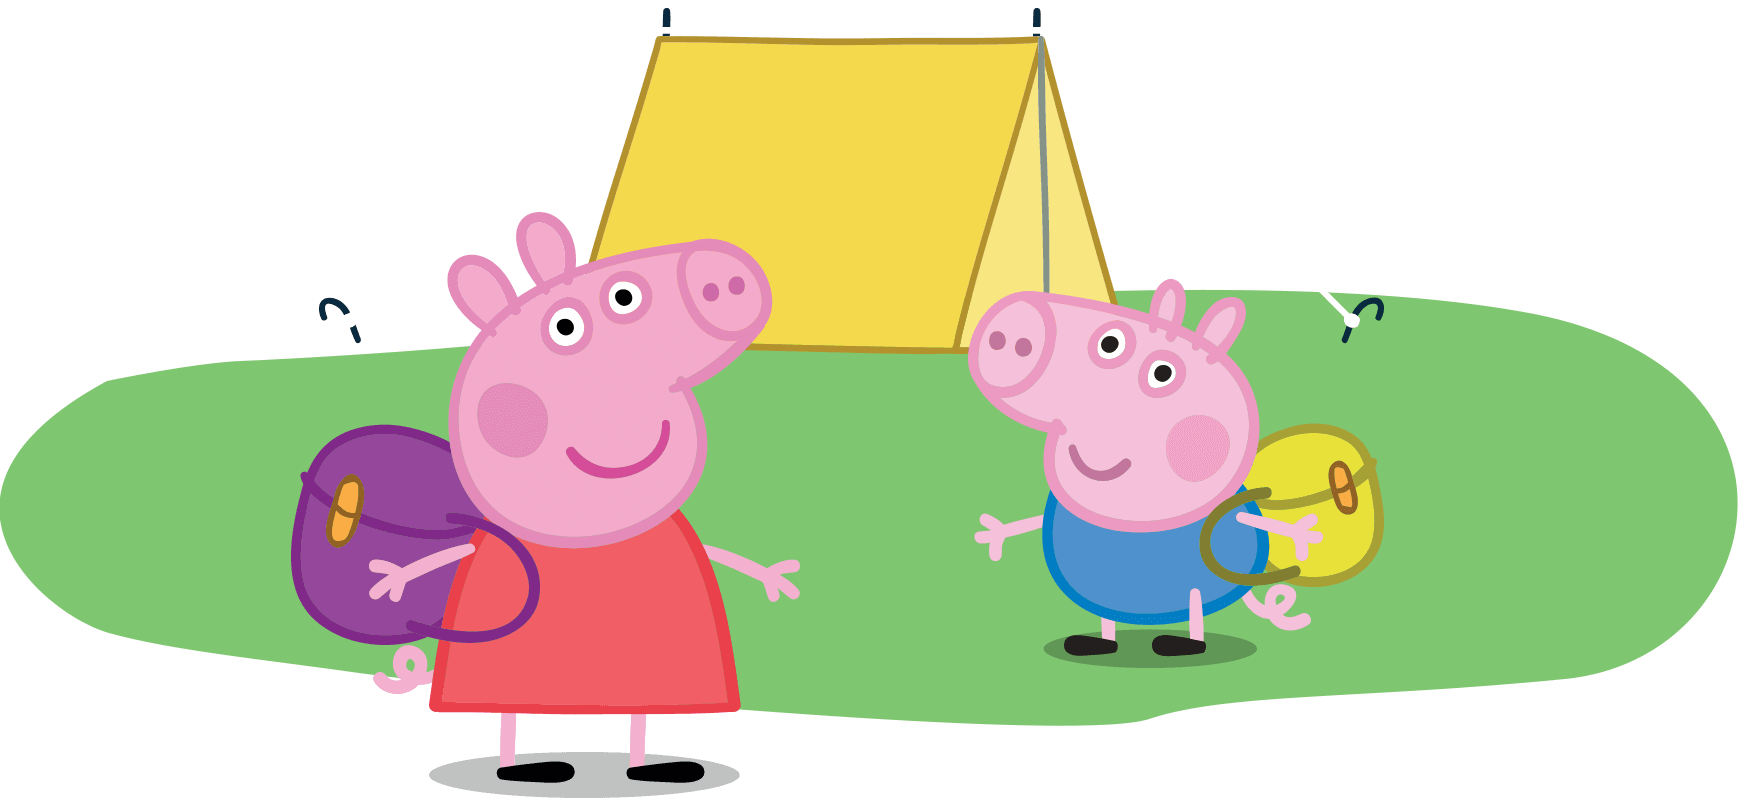 Peppa Pig's Adventure - Official Site